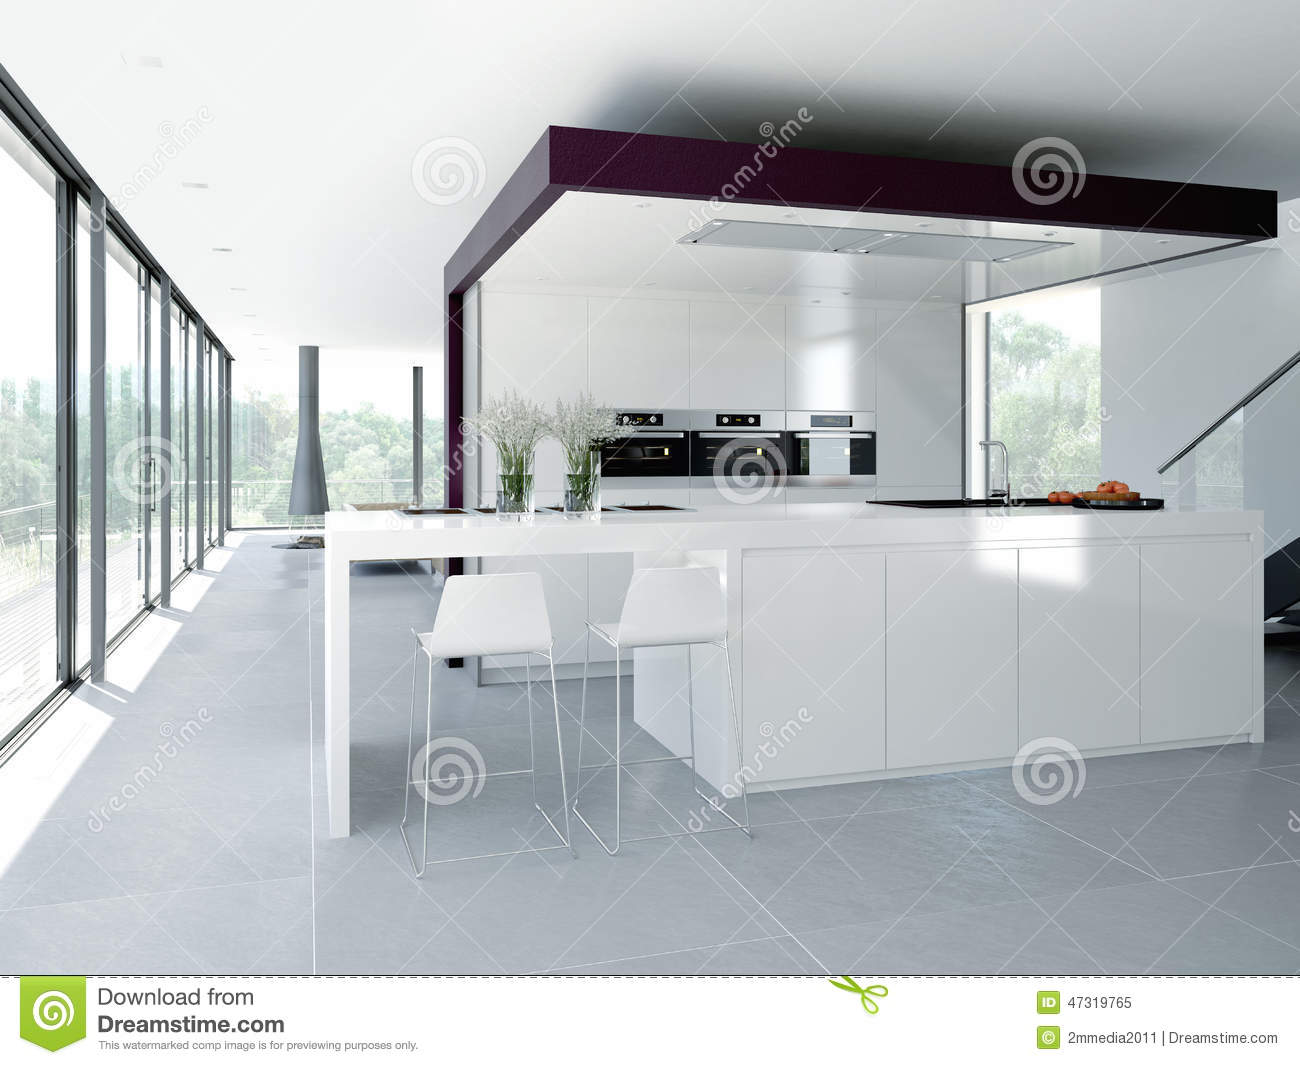 Interieur cuisine moderne home design architecture for Interieur cuisine moderne